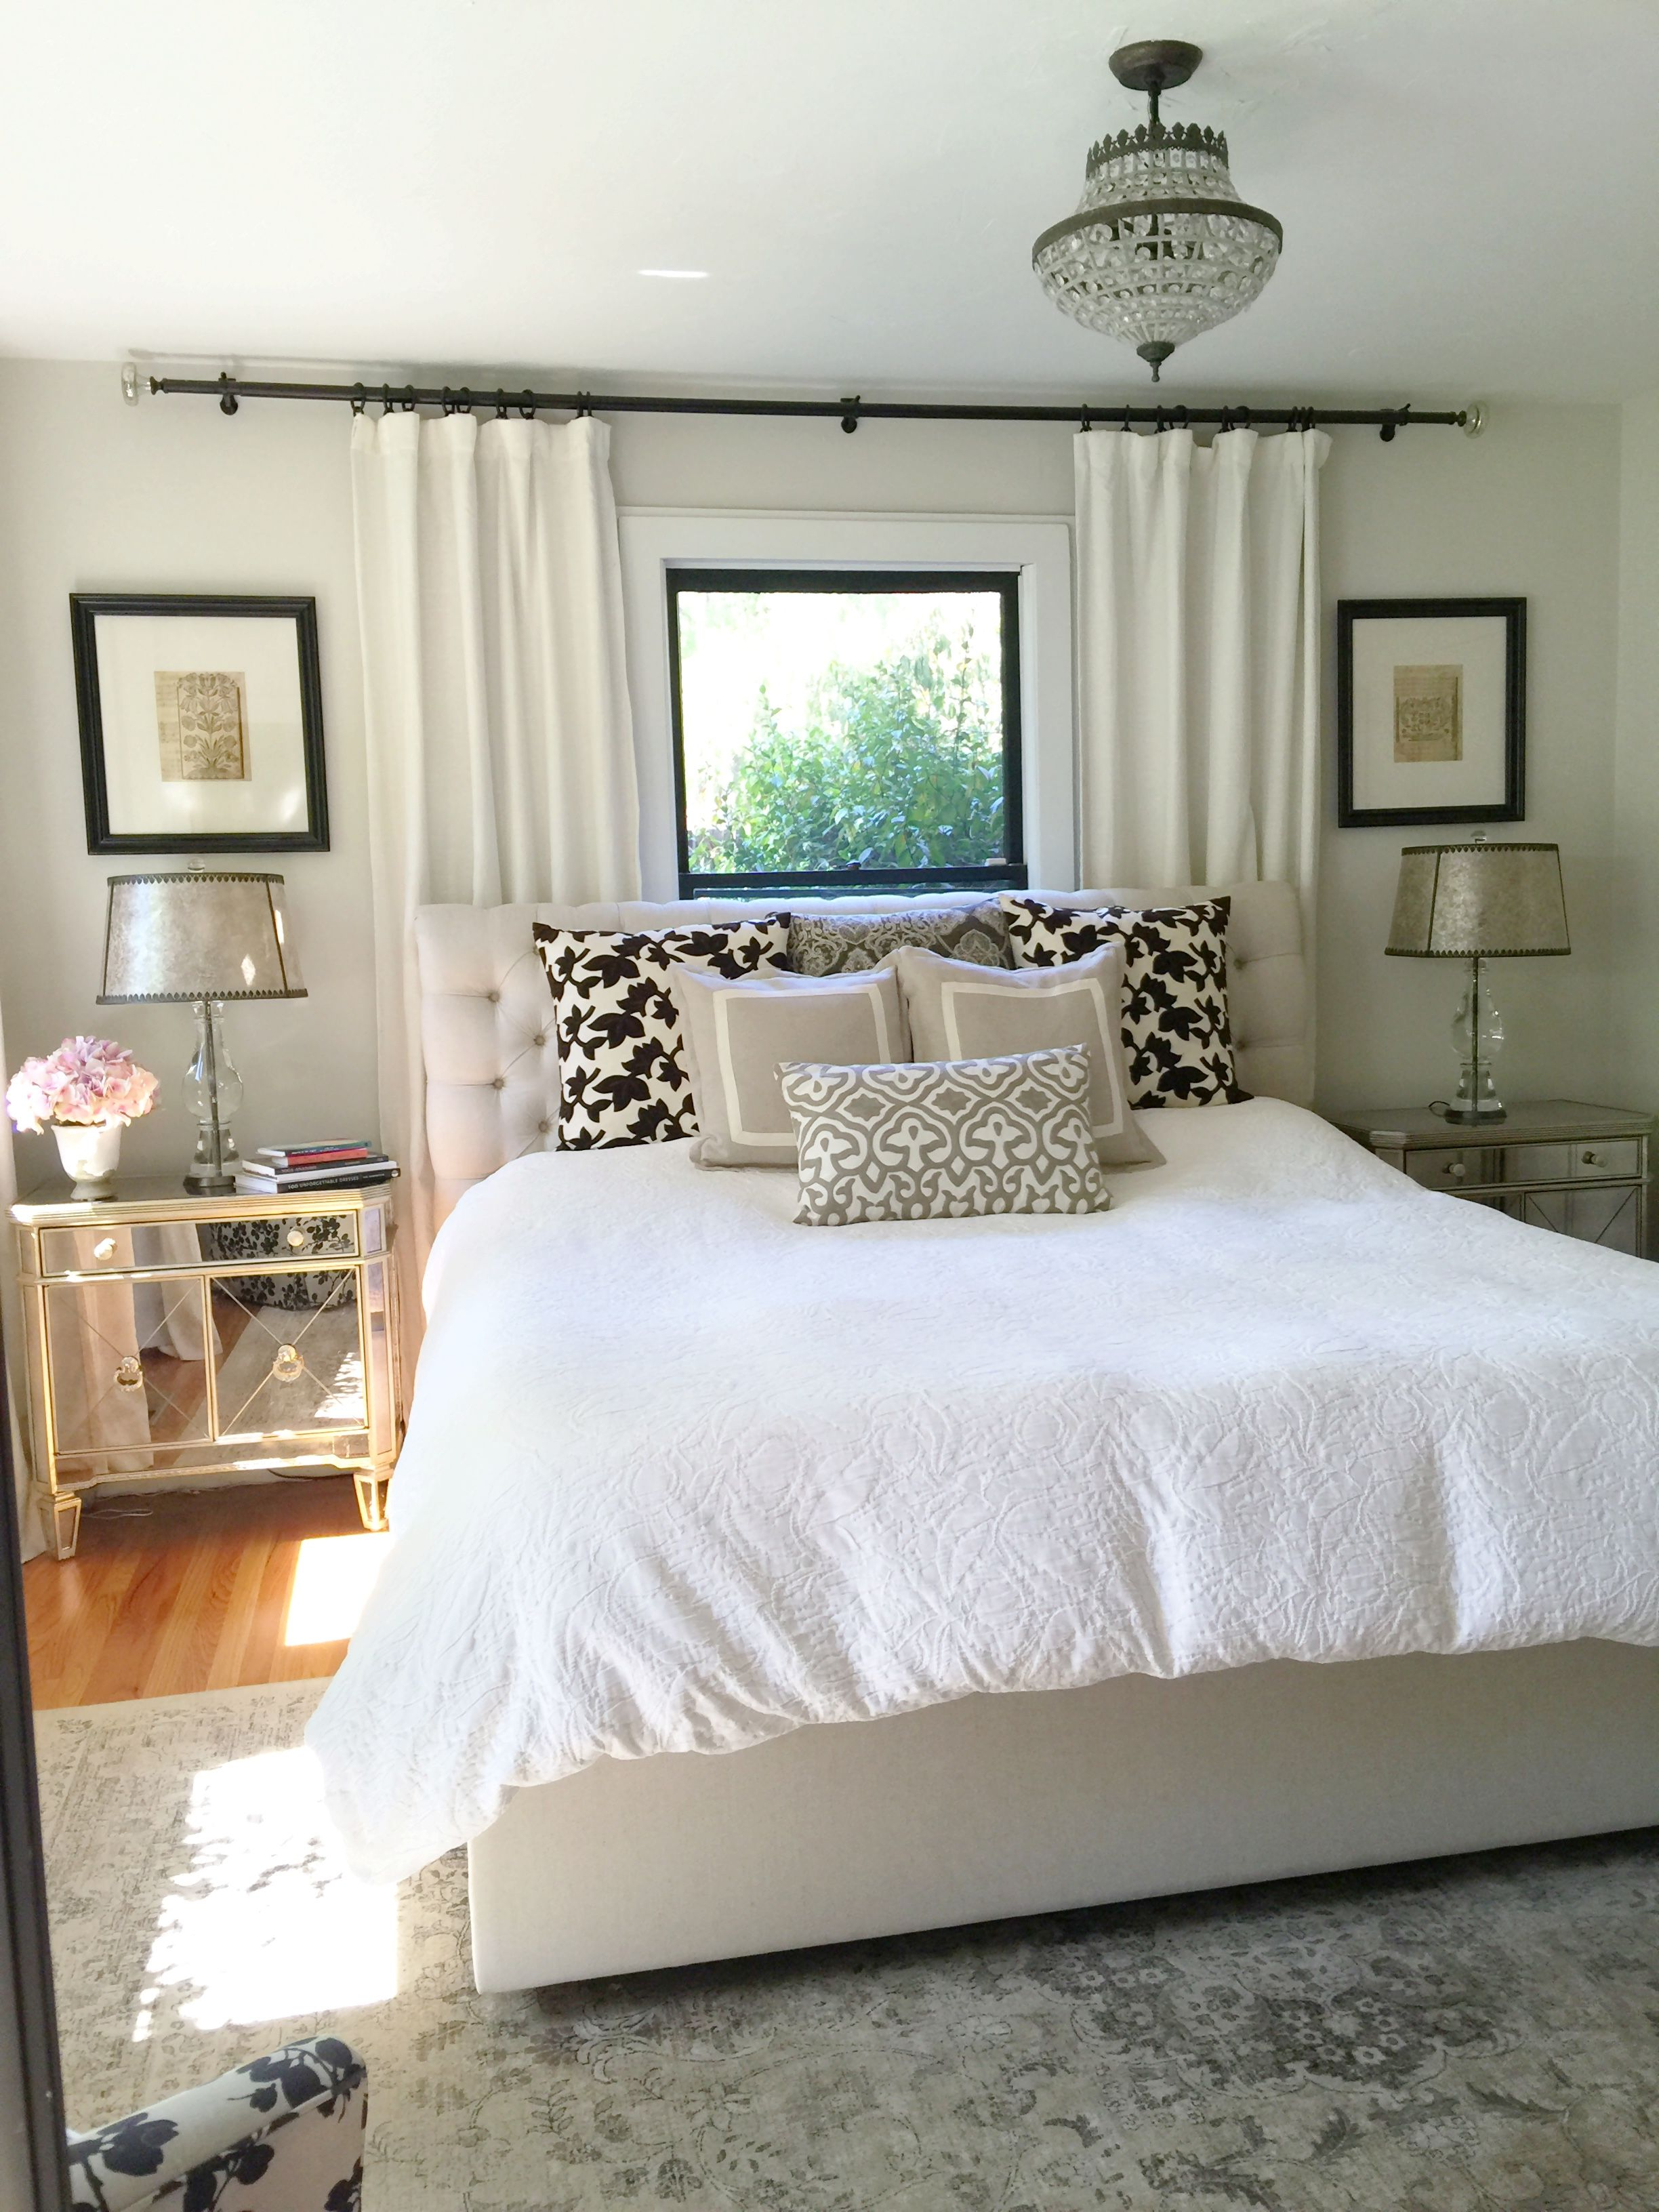 Neutral Bedroom Window Behind Bed Bedroom Window Treatments Paint Is Benjamin Moore Winds